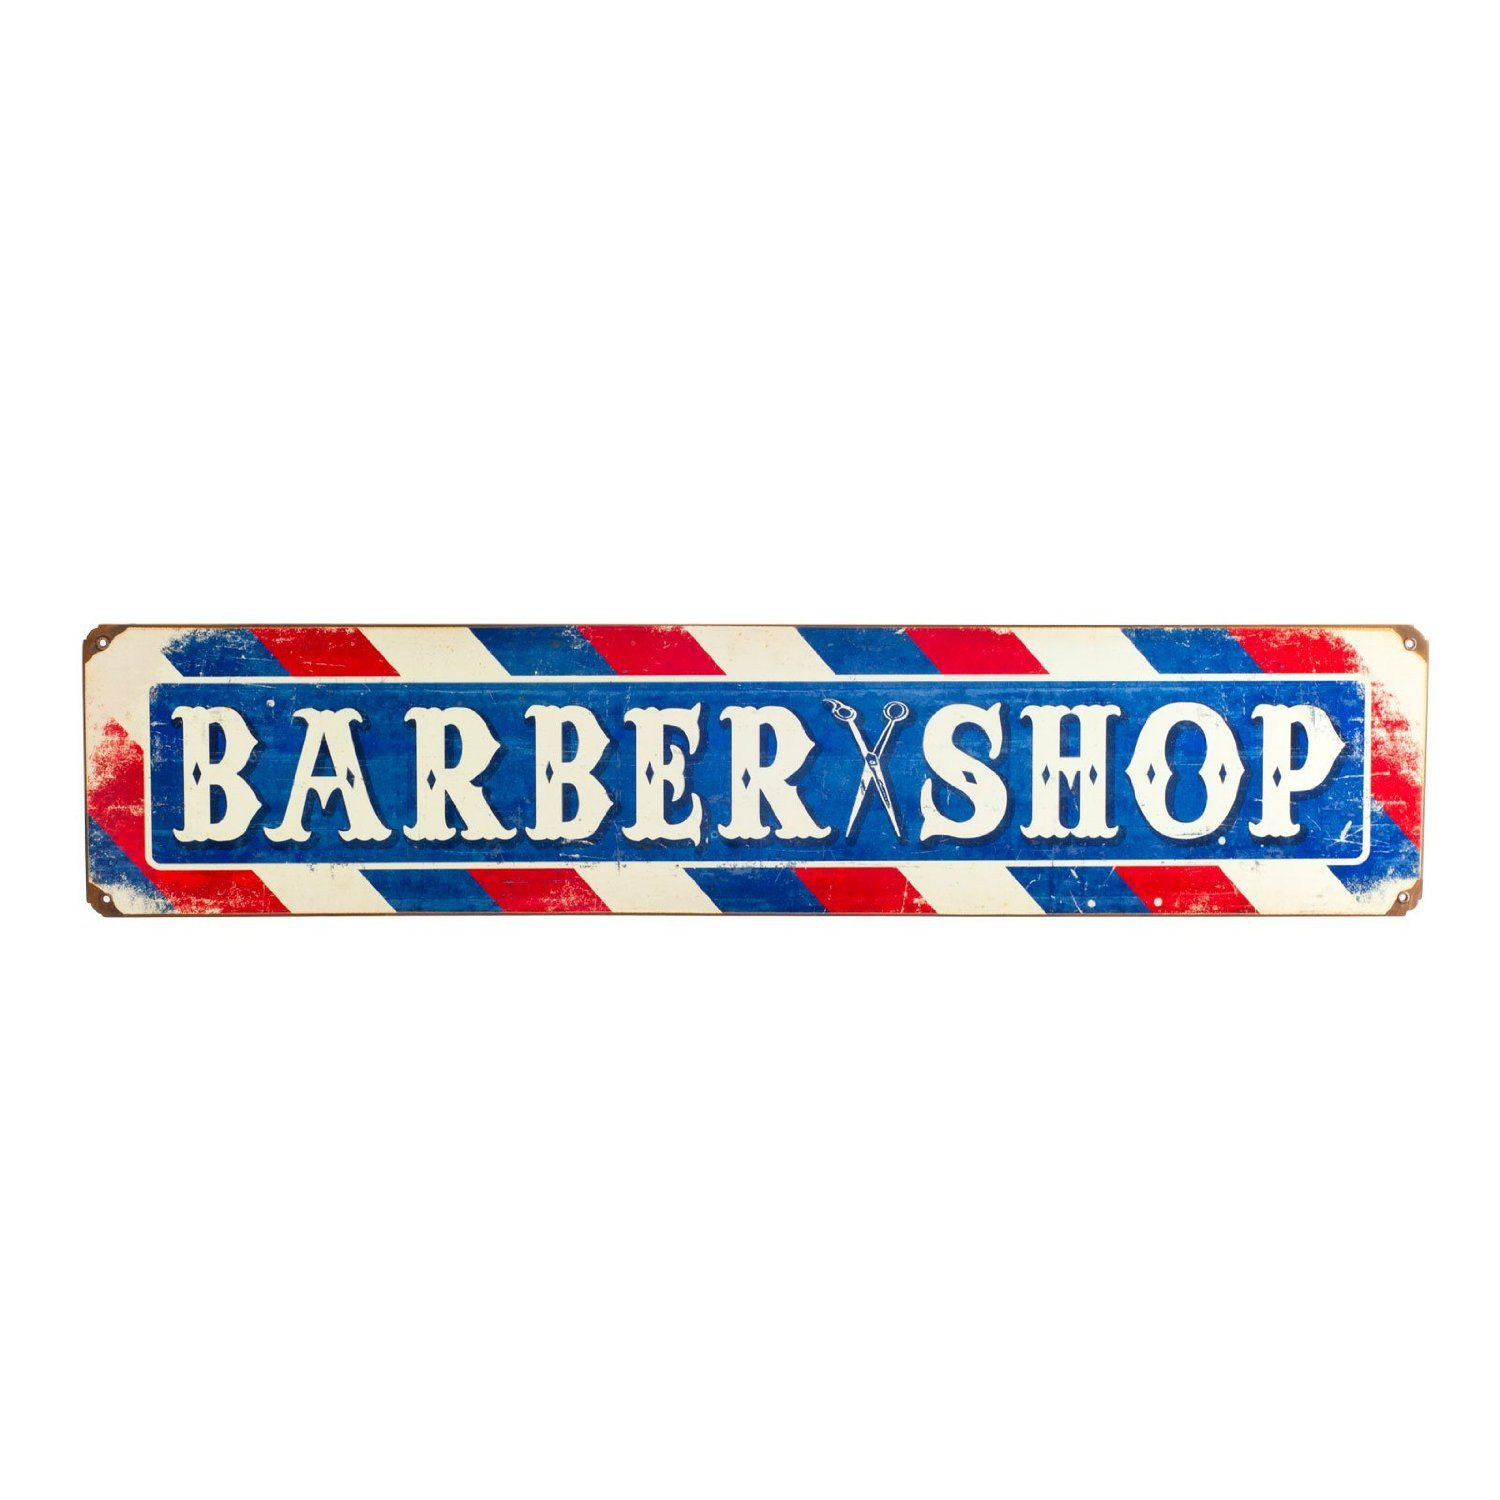 Barber shop pole distressed wall decal vintage style wall decor ebay - Retro Barber Shop Sign